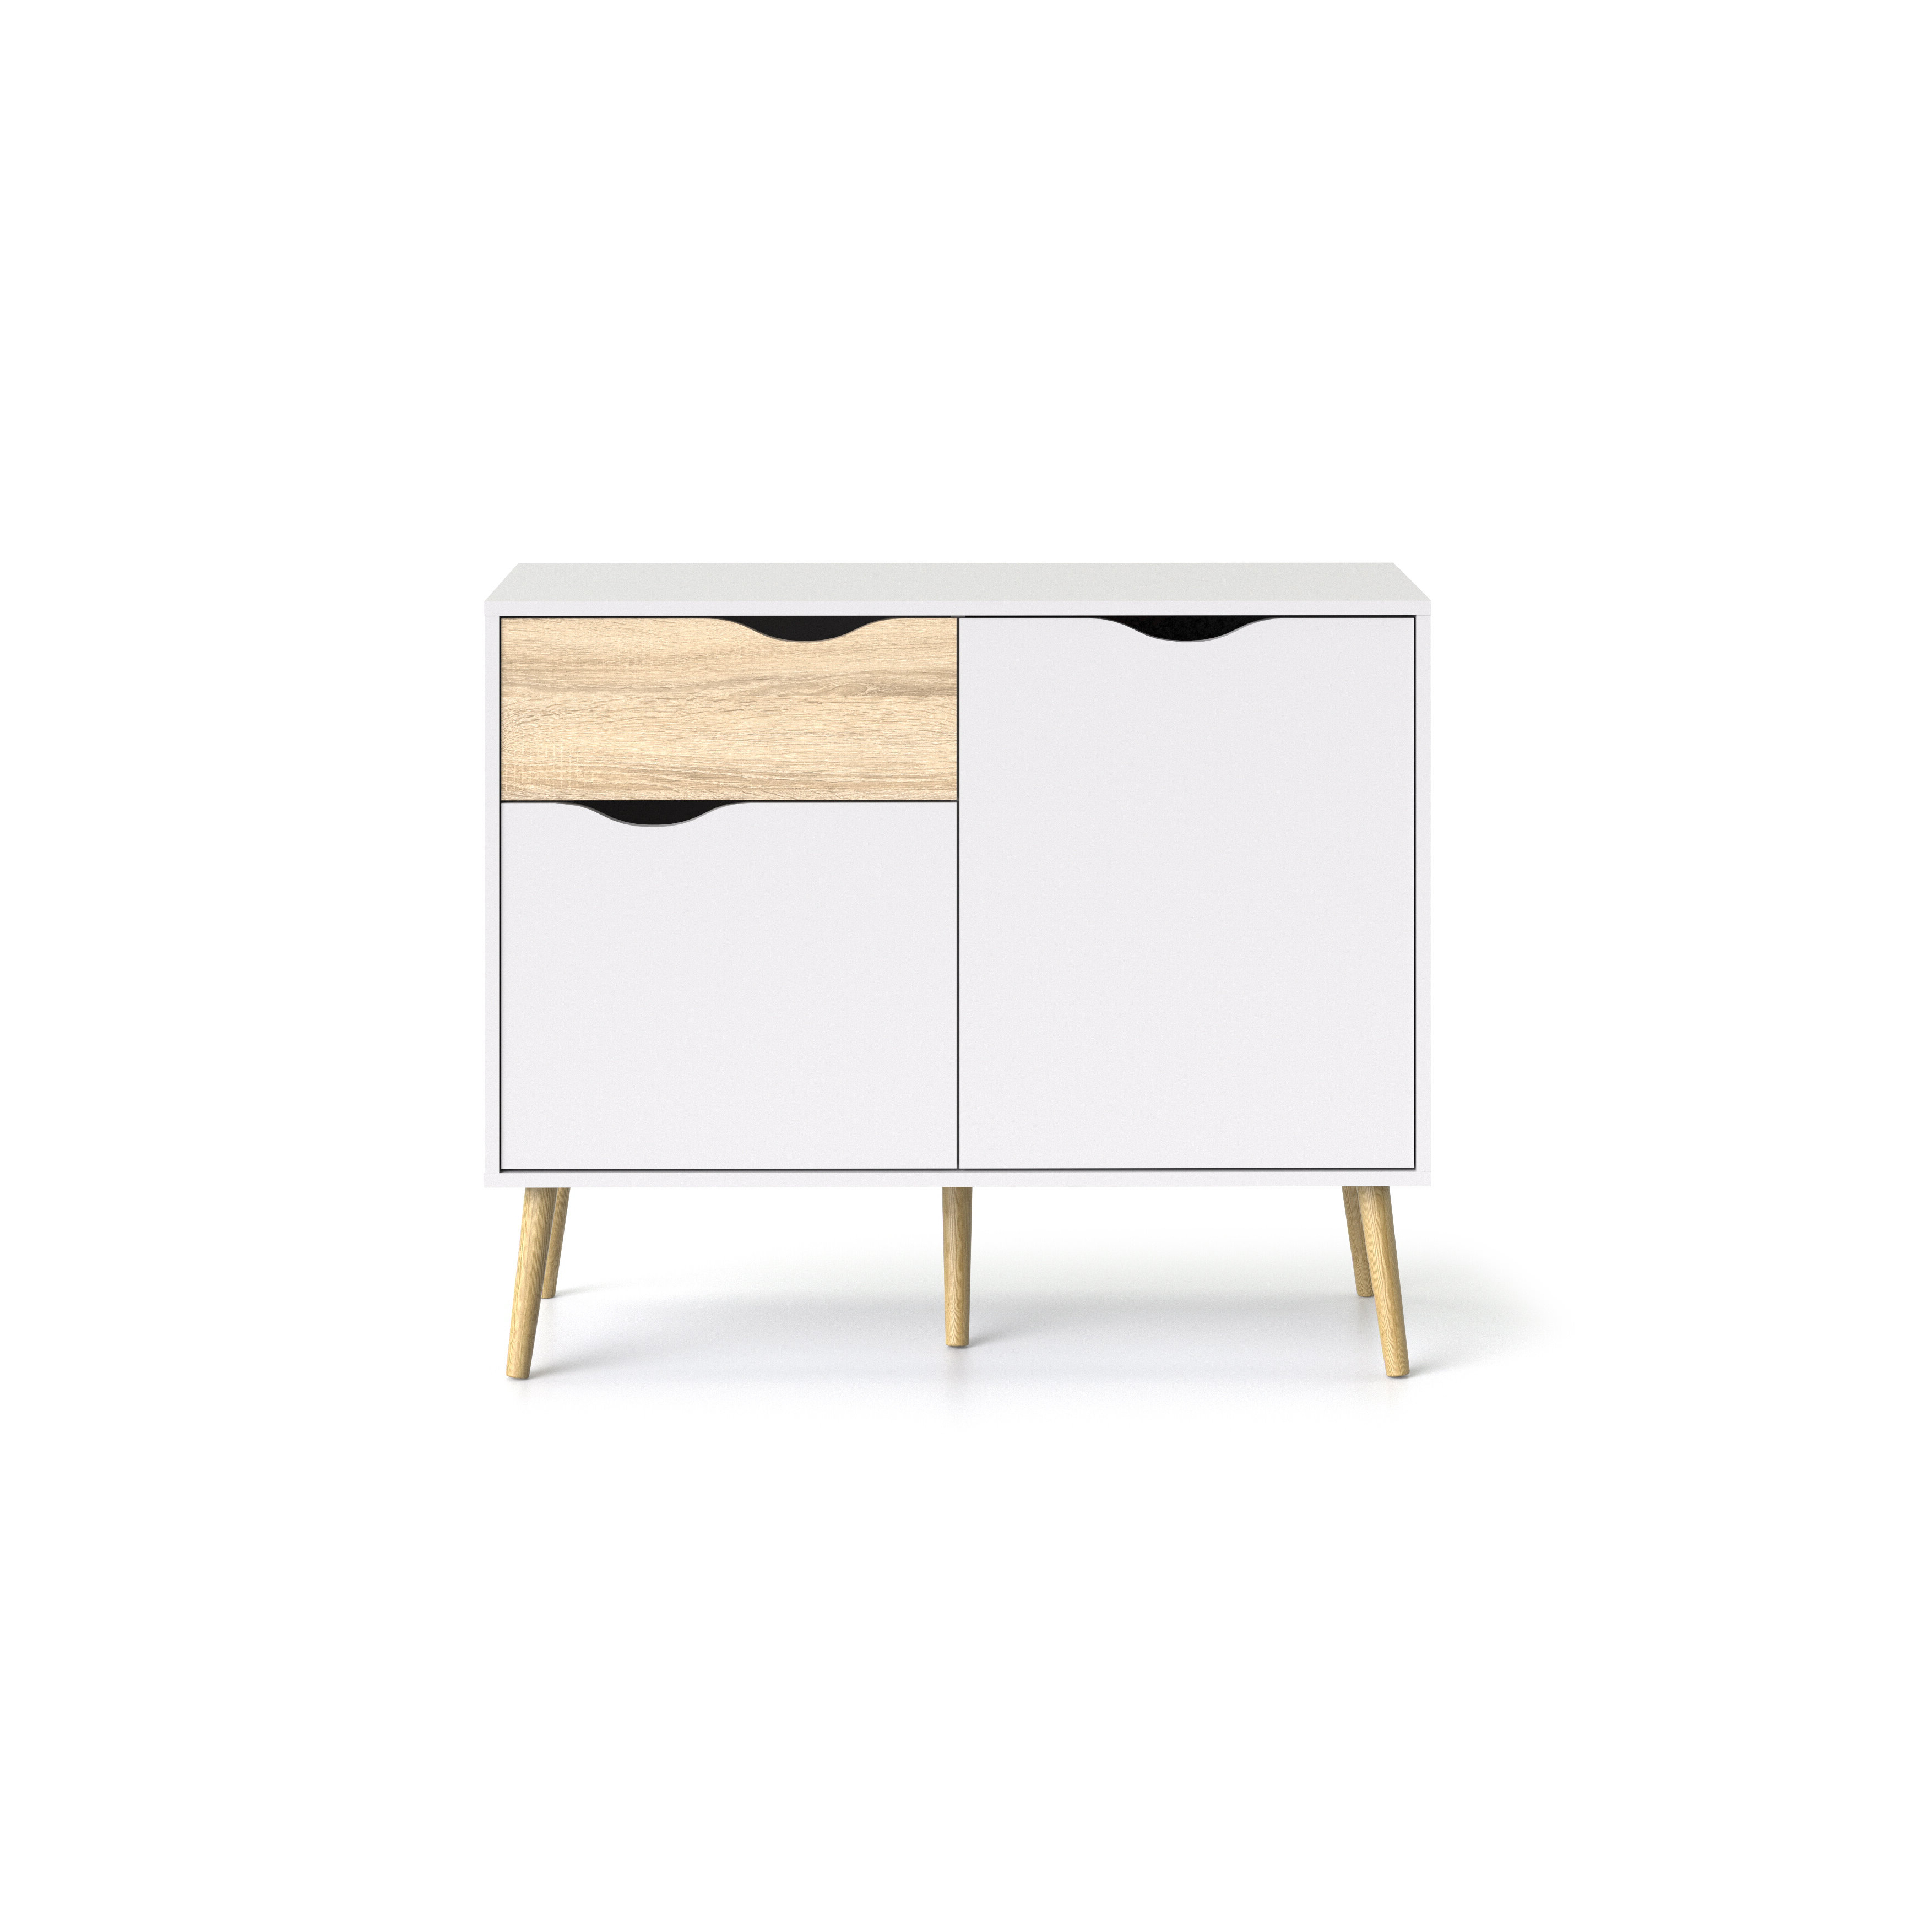 Dowler 3 Drawers Accent Chest For Well Known Dowler 2 Drawer Sideboards (View 5 of 20)